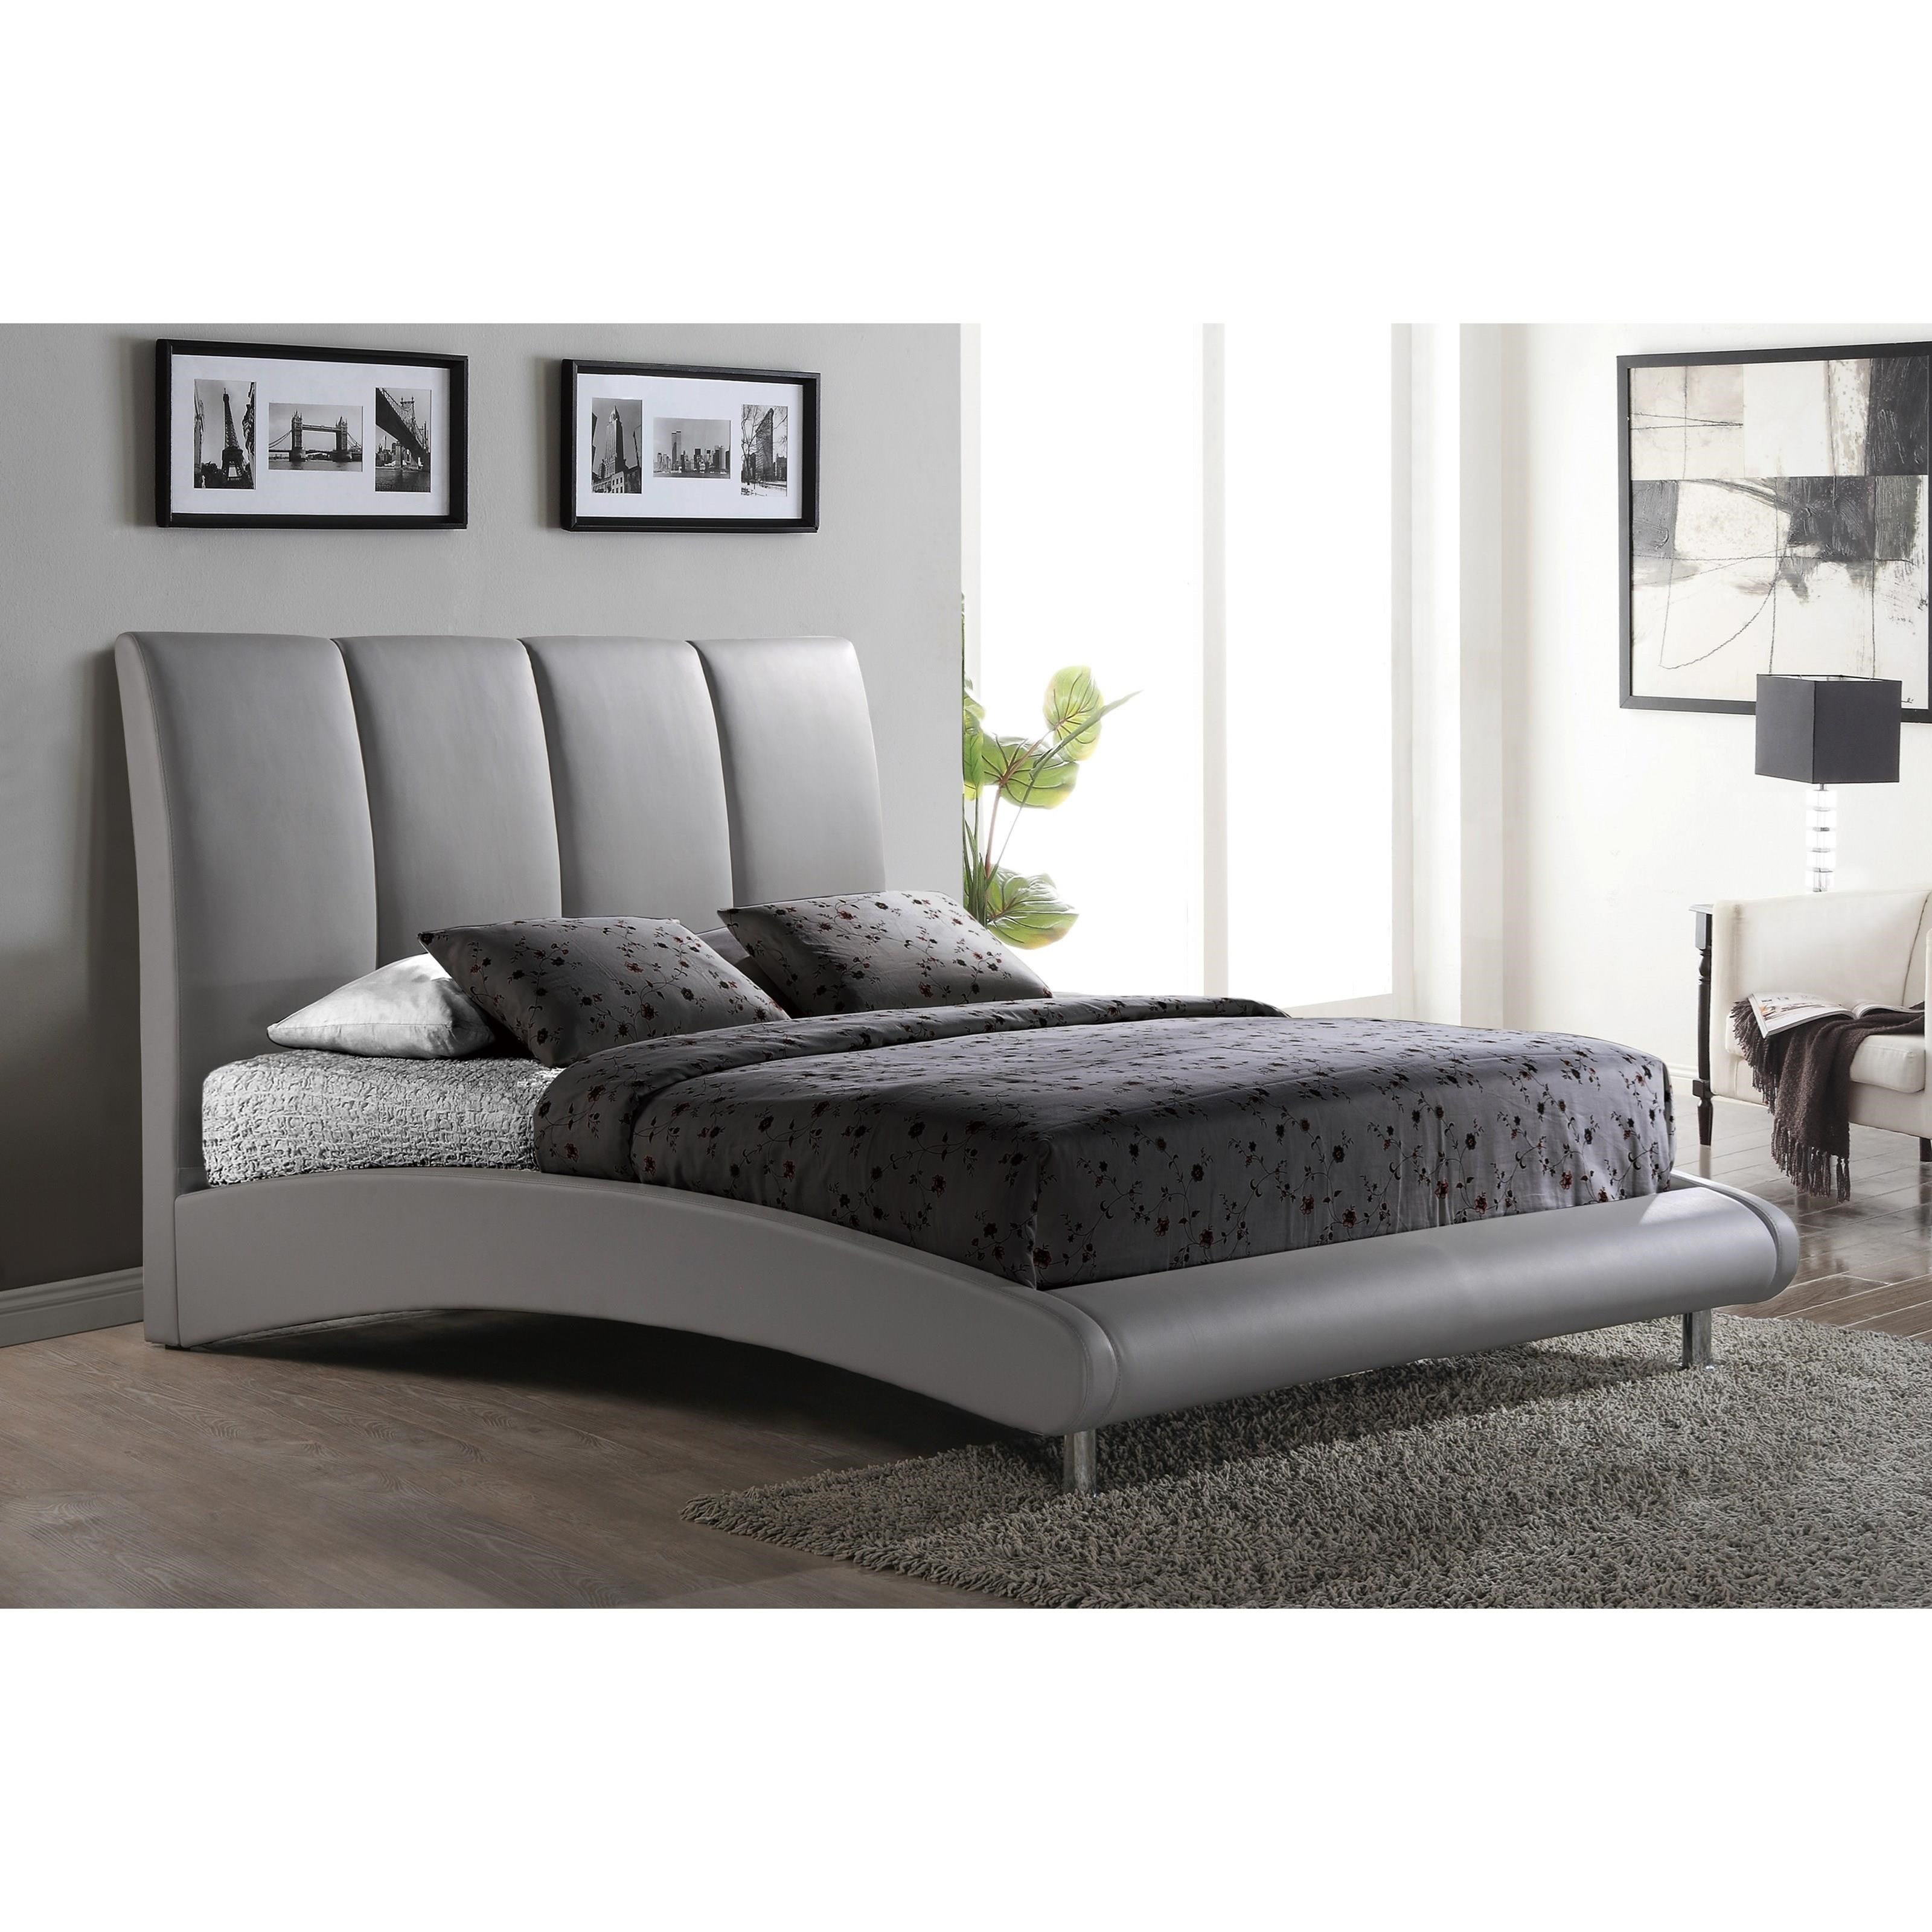 8272 Arched King Bed by Global Furniture at Nassau Furniture and Mattress